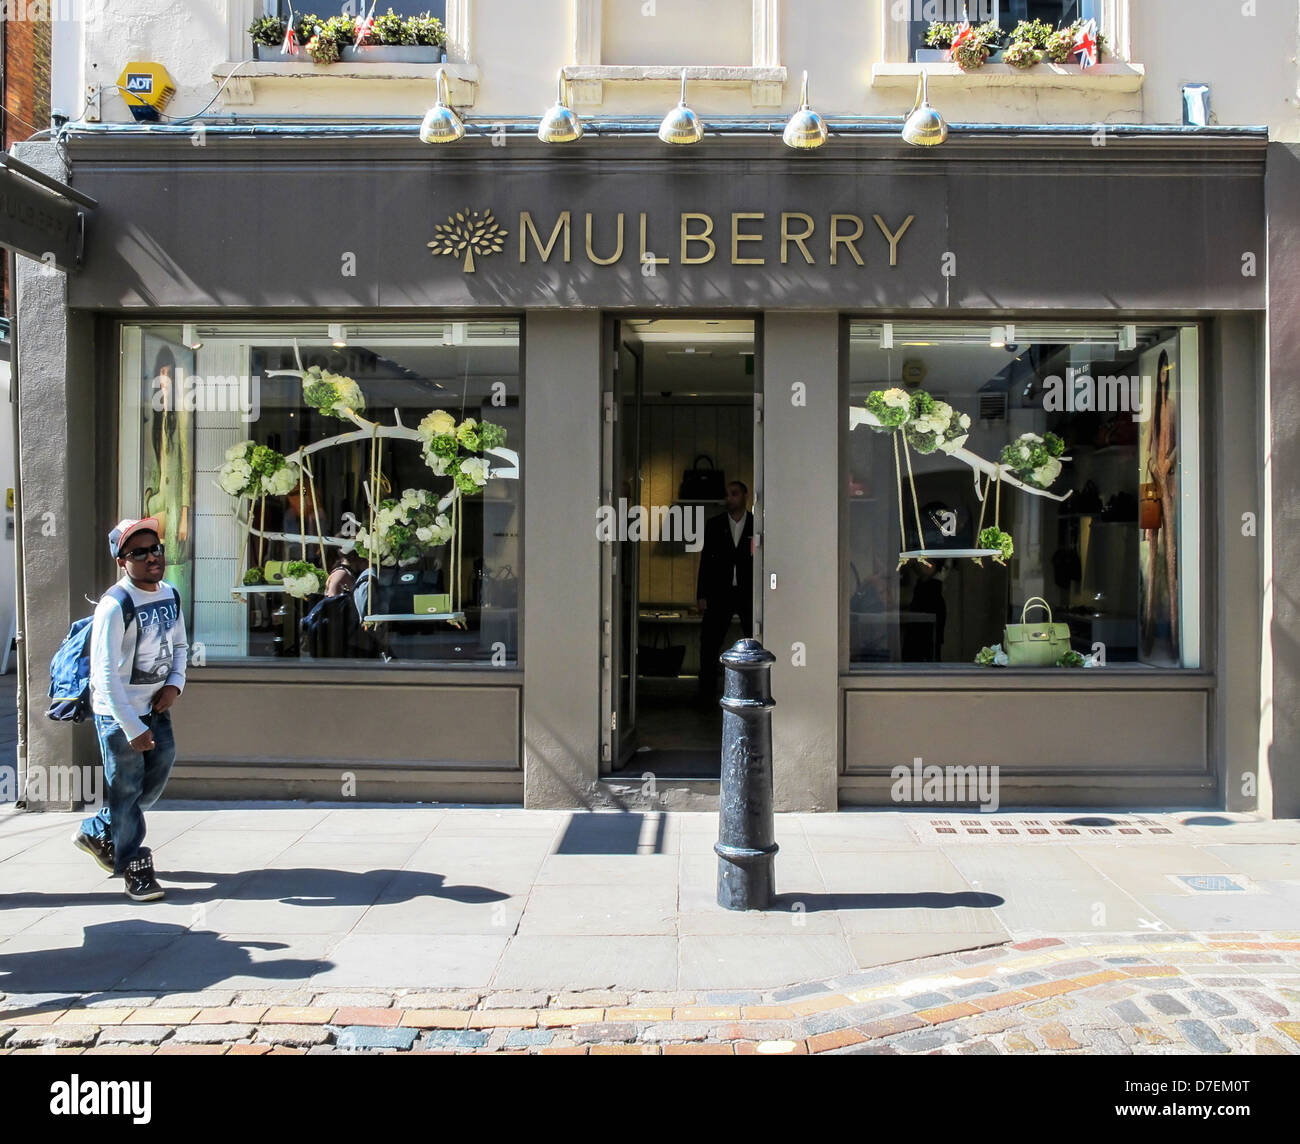 bb40a6627e5 Mulberry shop selling expensive handbags, Covent Garden, London ...